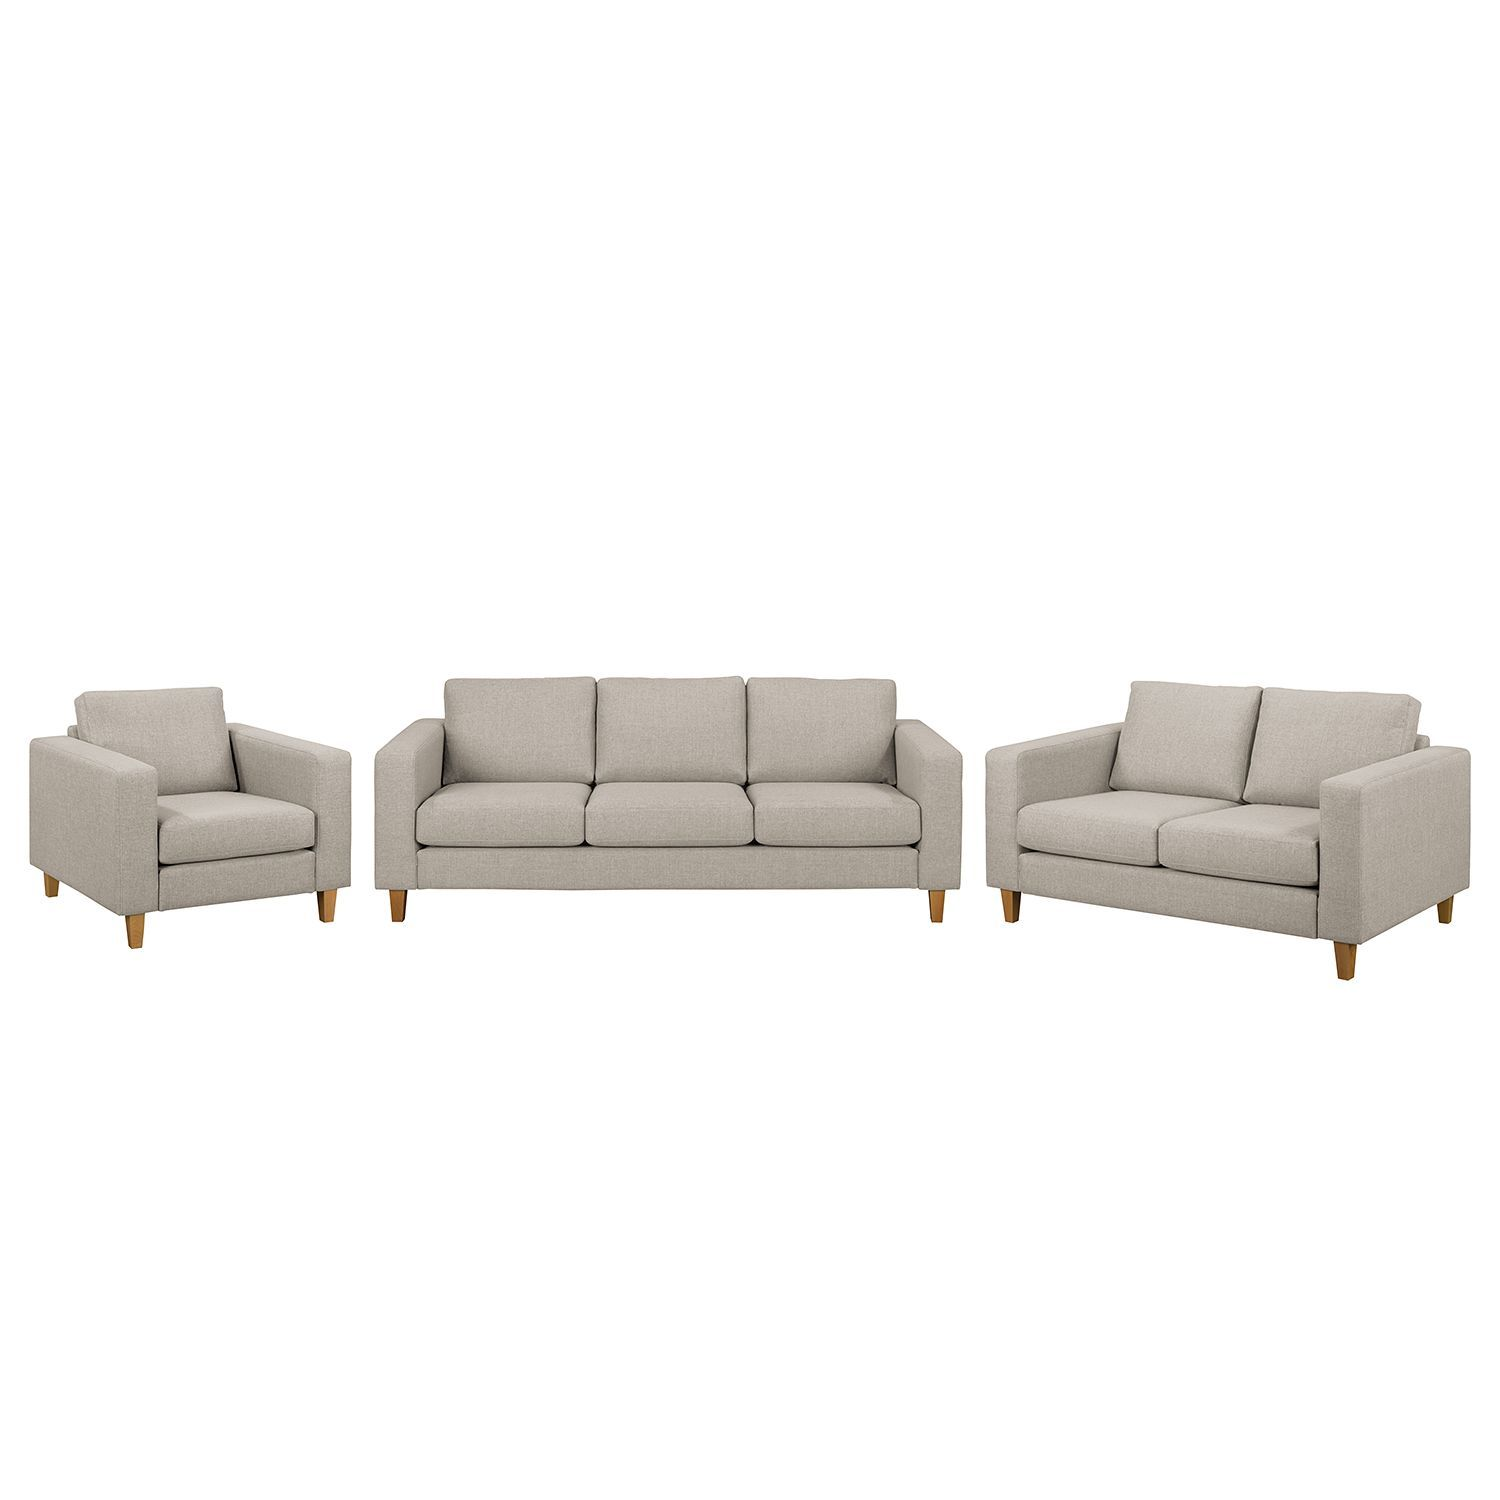 Polstergarnitur Maison 3 2 1 Big Sofa Kaufen Sofa Design